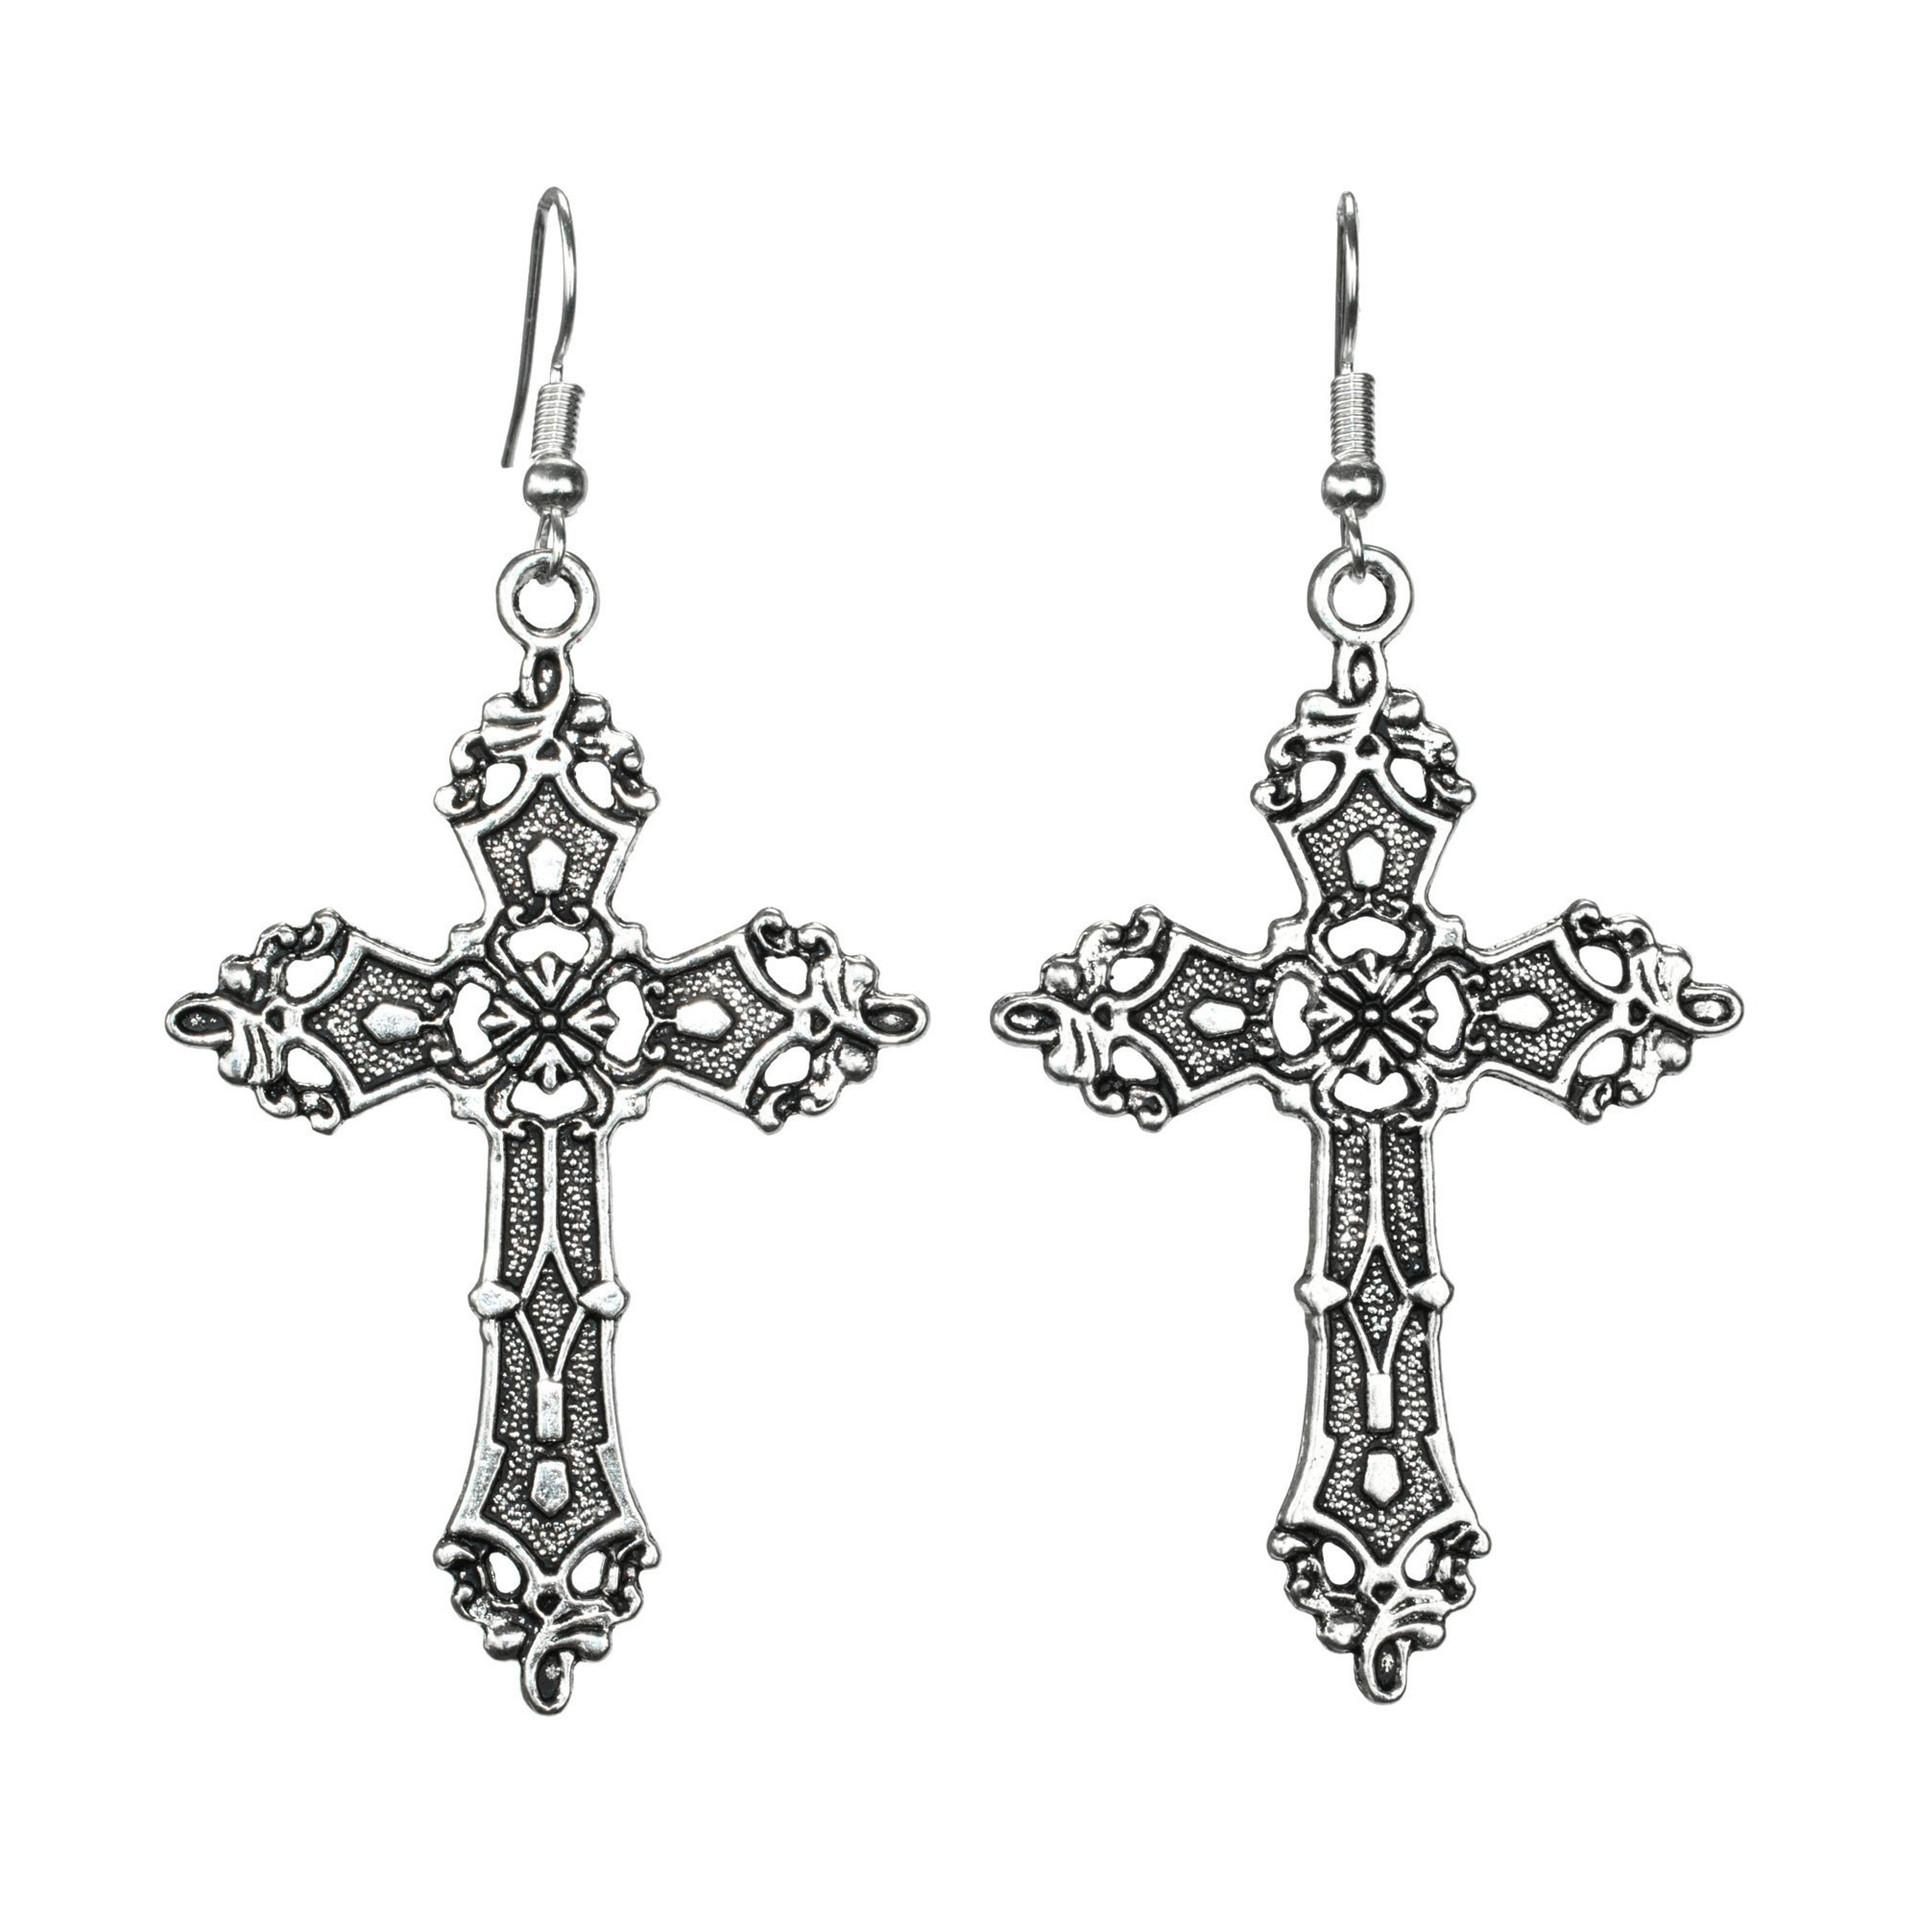 New Style Ancient Silver Christ Cross Pendant Charm Earring Personality Creative Women Jewelry Earrings Ear Hook Accessories Holiday Gift